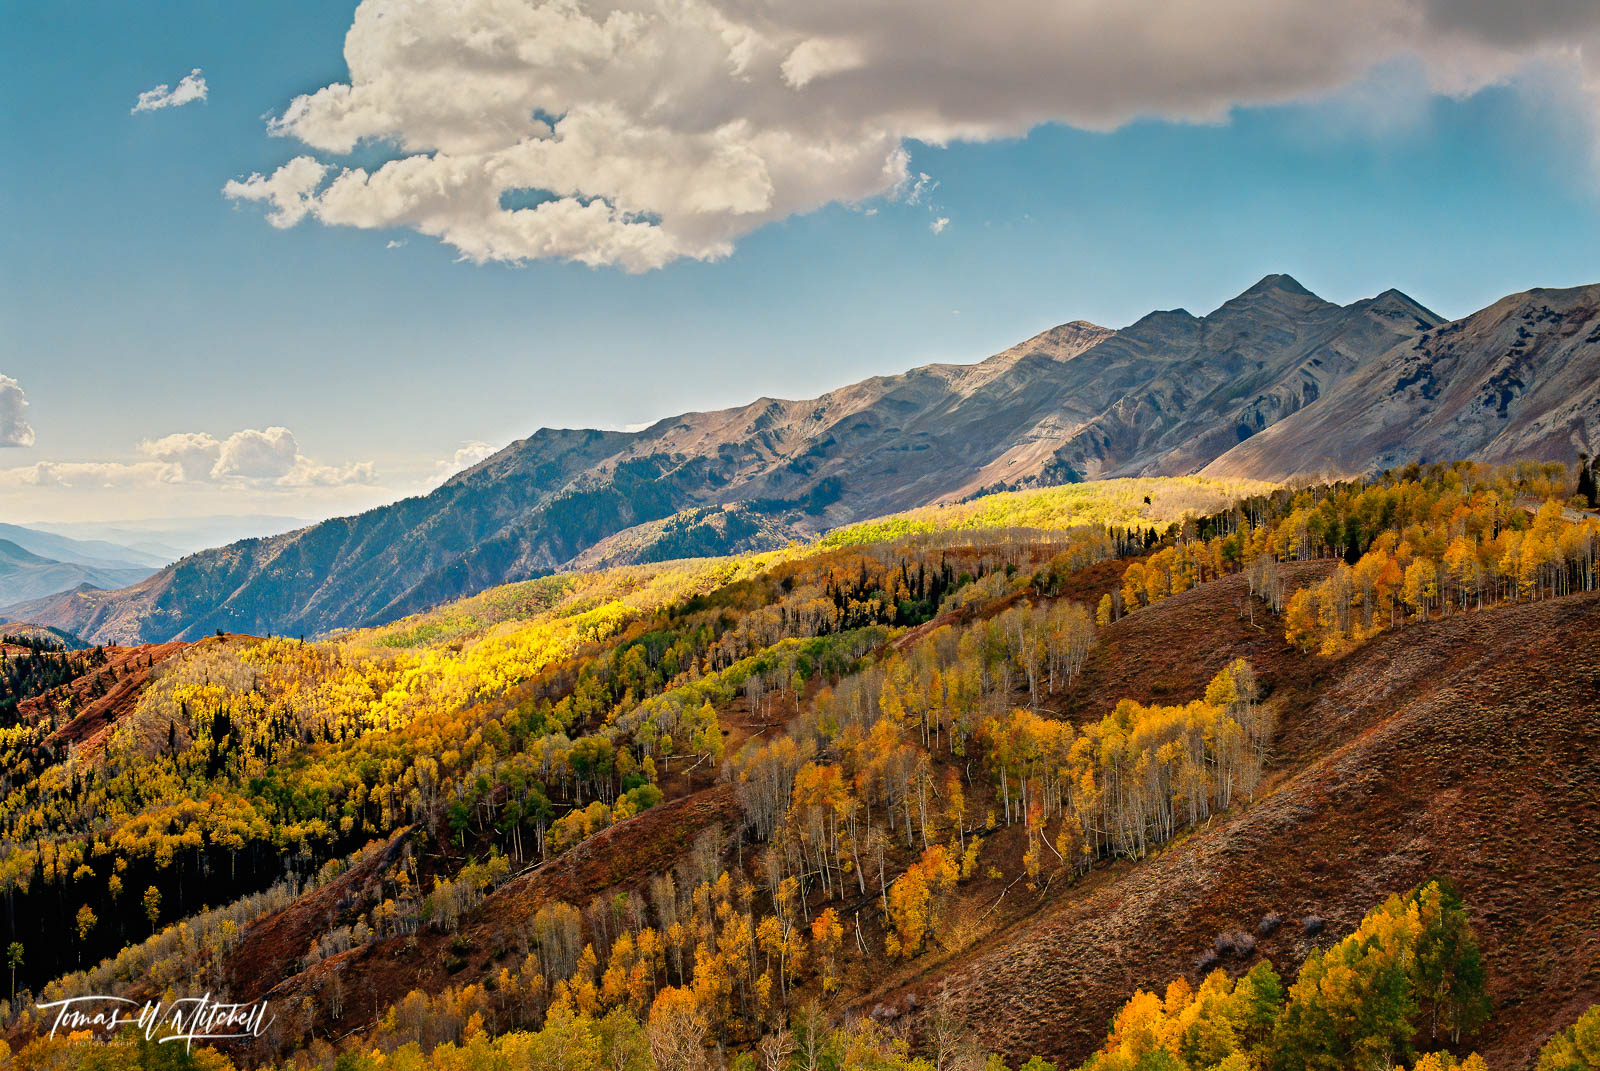 limited edition, fine art, prints, film, mount nebo, utah, fall, colors, aspen, trees, yellow, glow, photograph, golden, forest, towering, mountain, puffy, clouds, blue, sky, photo